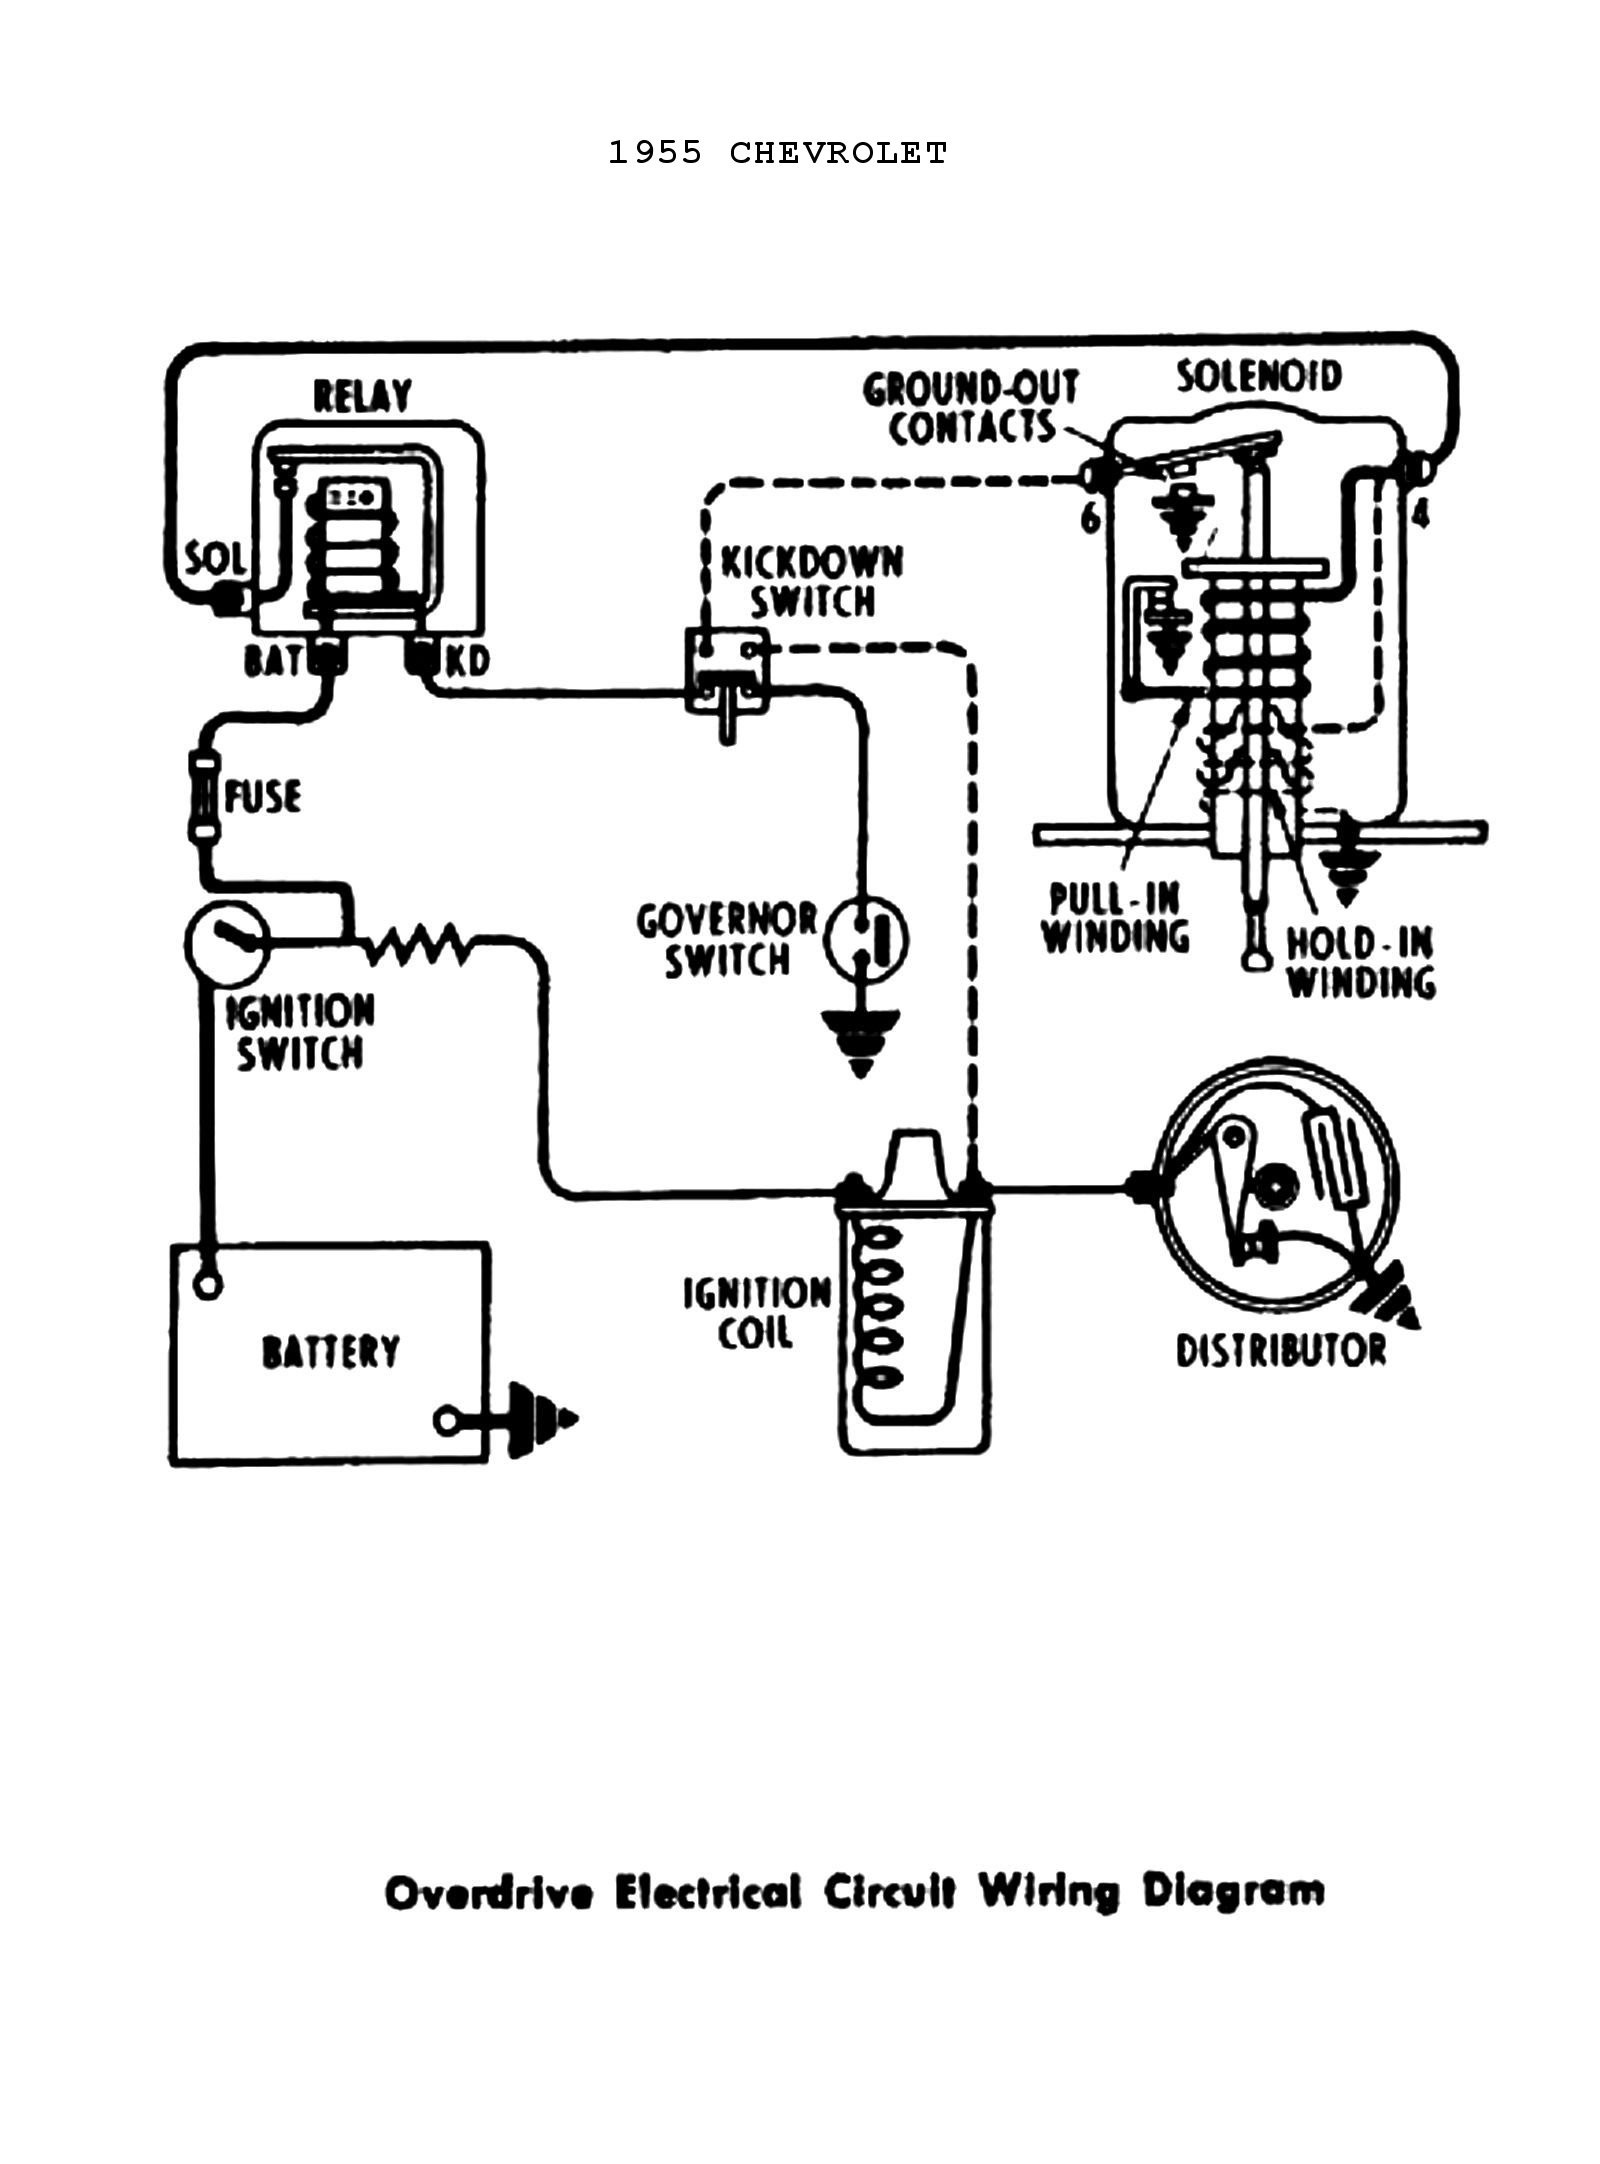 Distributor Wiring Diagram 87 Chevy 350